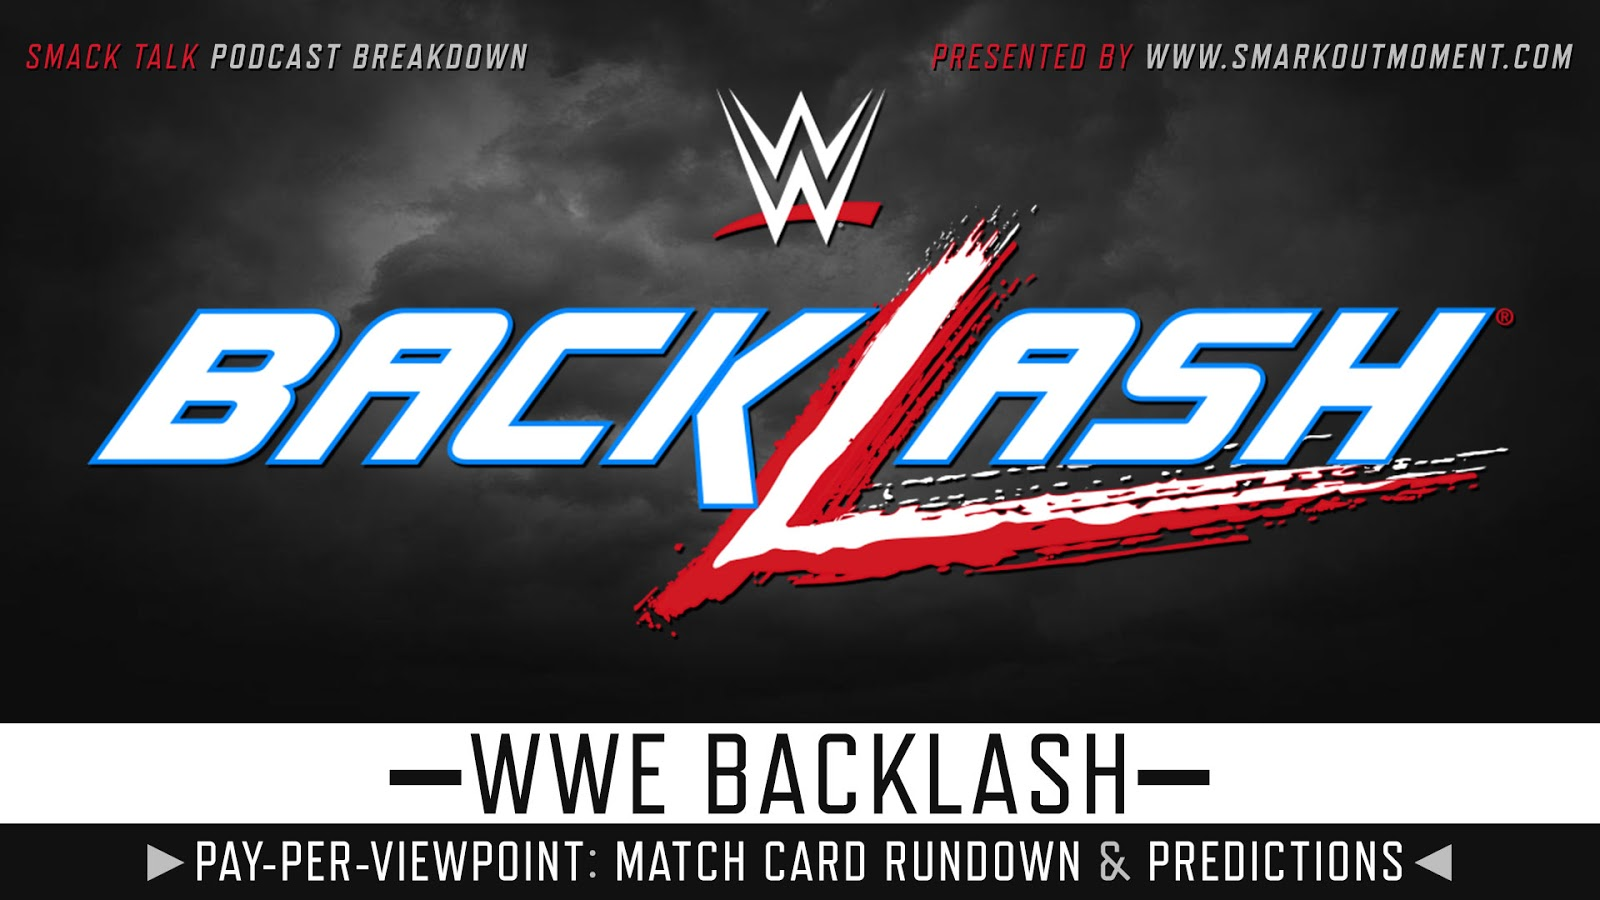 WWE Backlash 2020 spoilers podcast